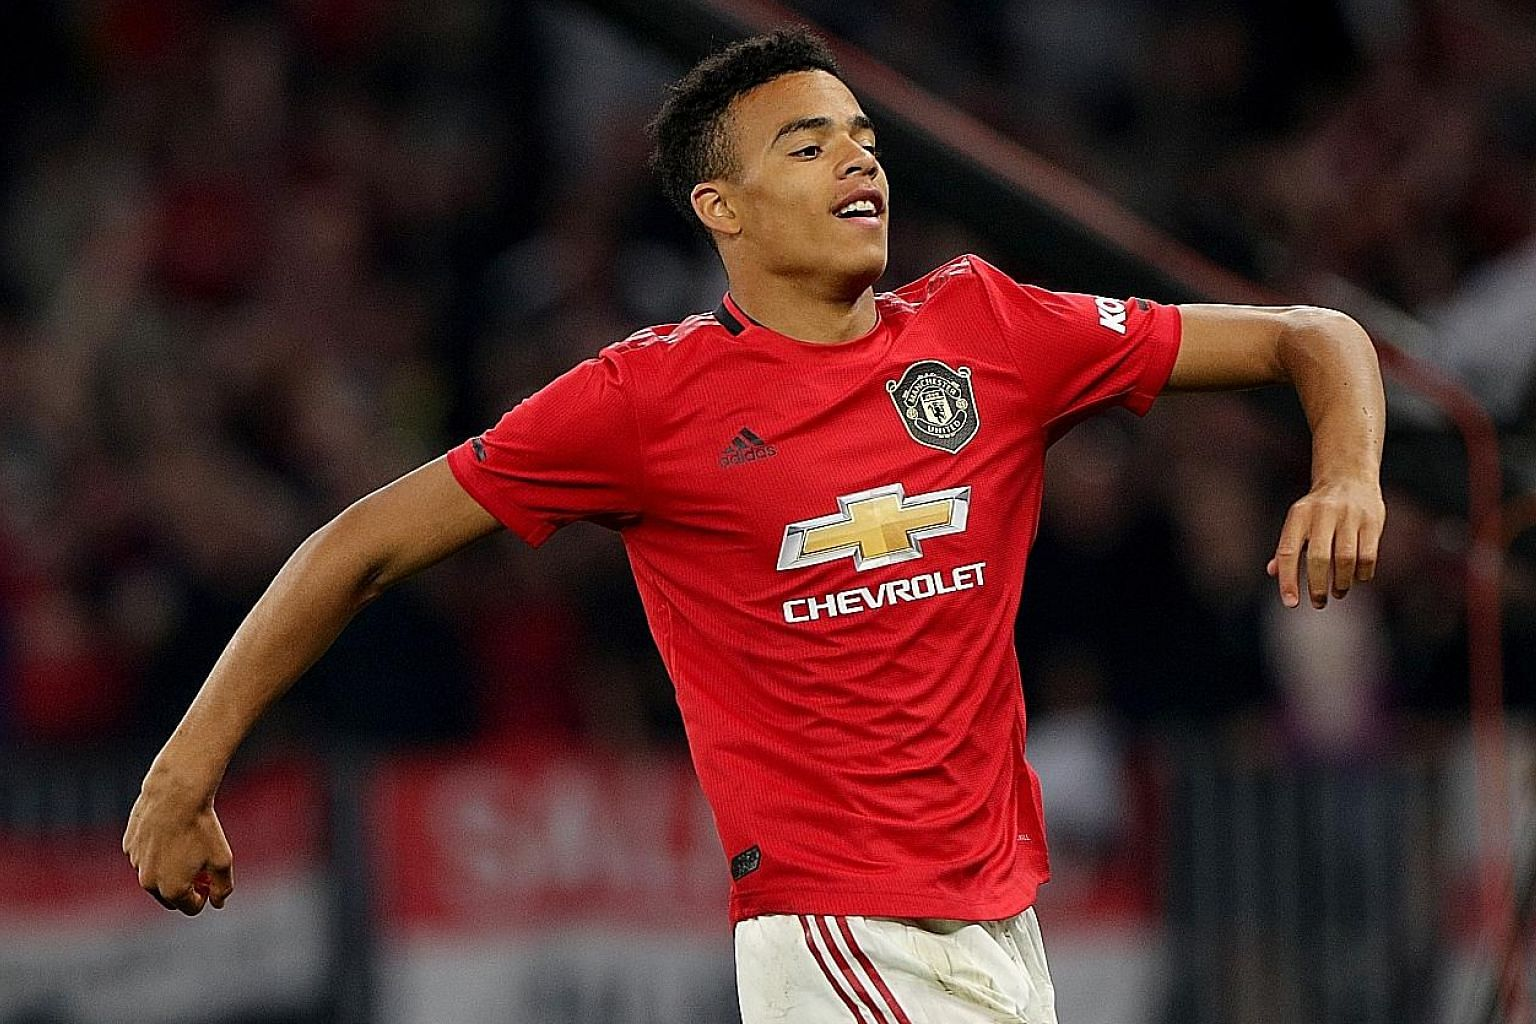 Mason Greenwood celebrating after netting the opener against Leeds. The 17-year-old striker will have a role to play off the bench next term. PHOTO: DPA